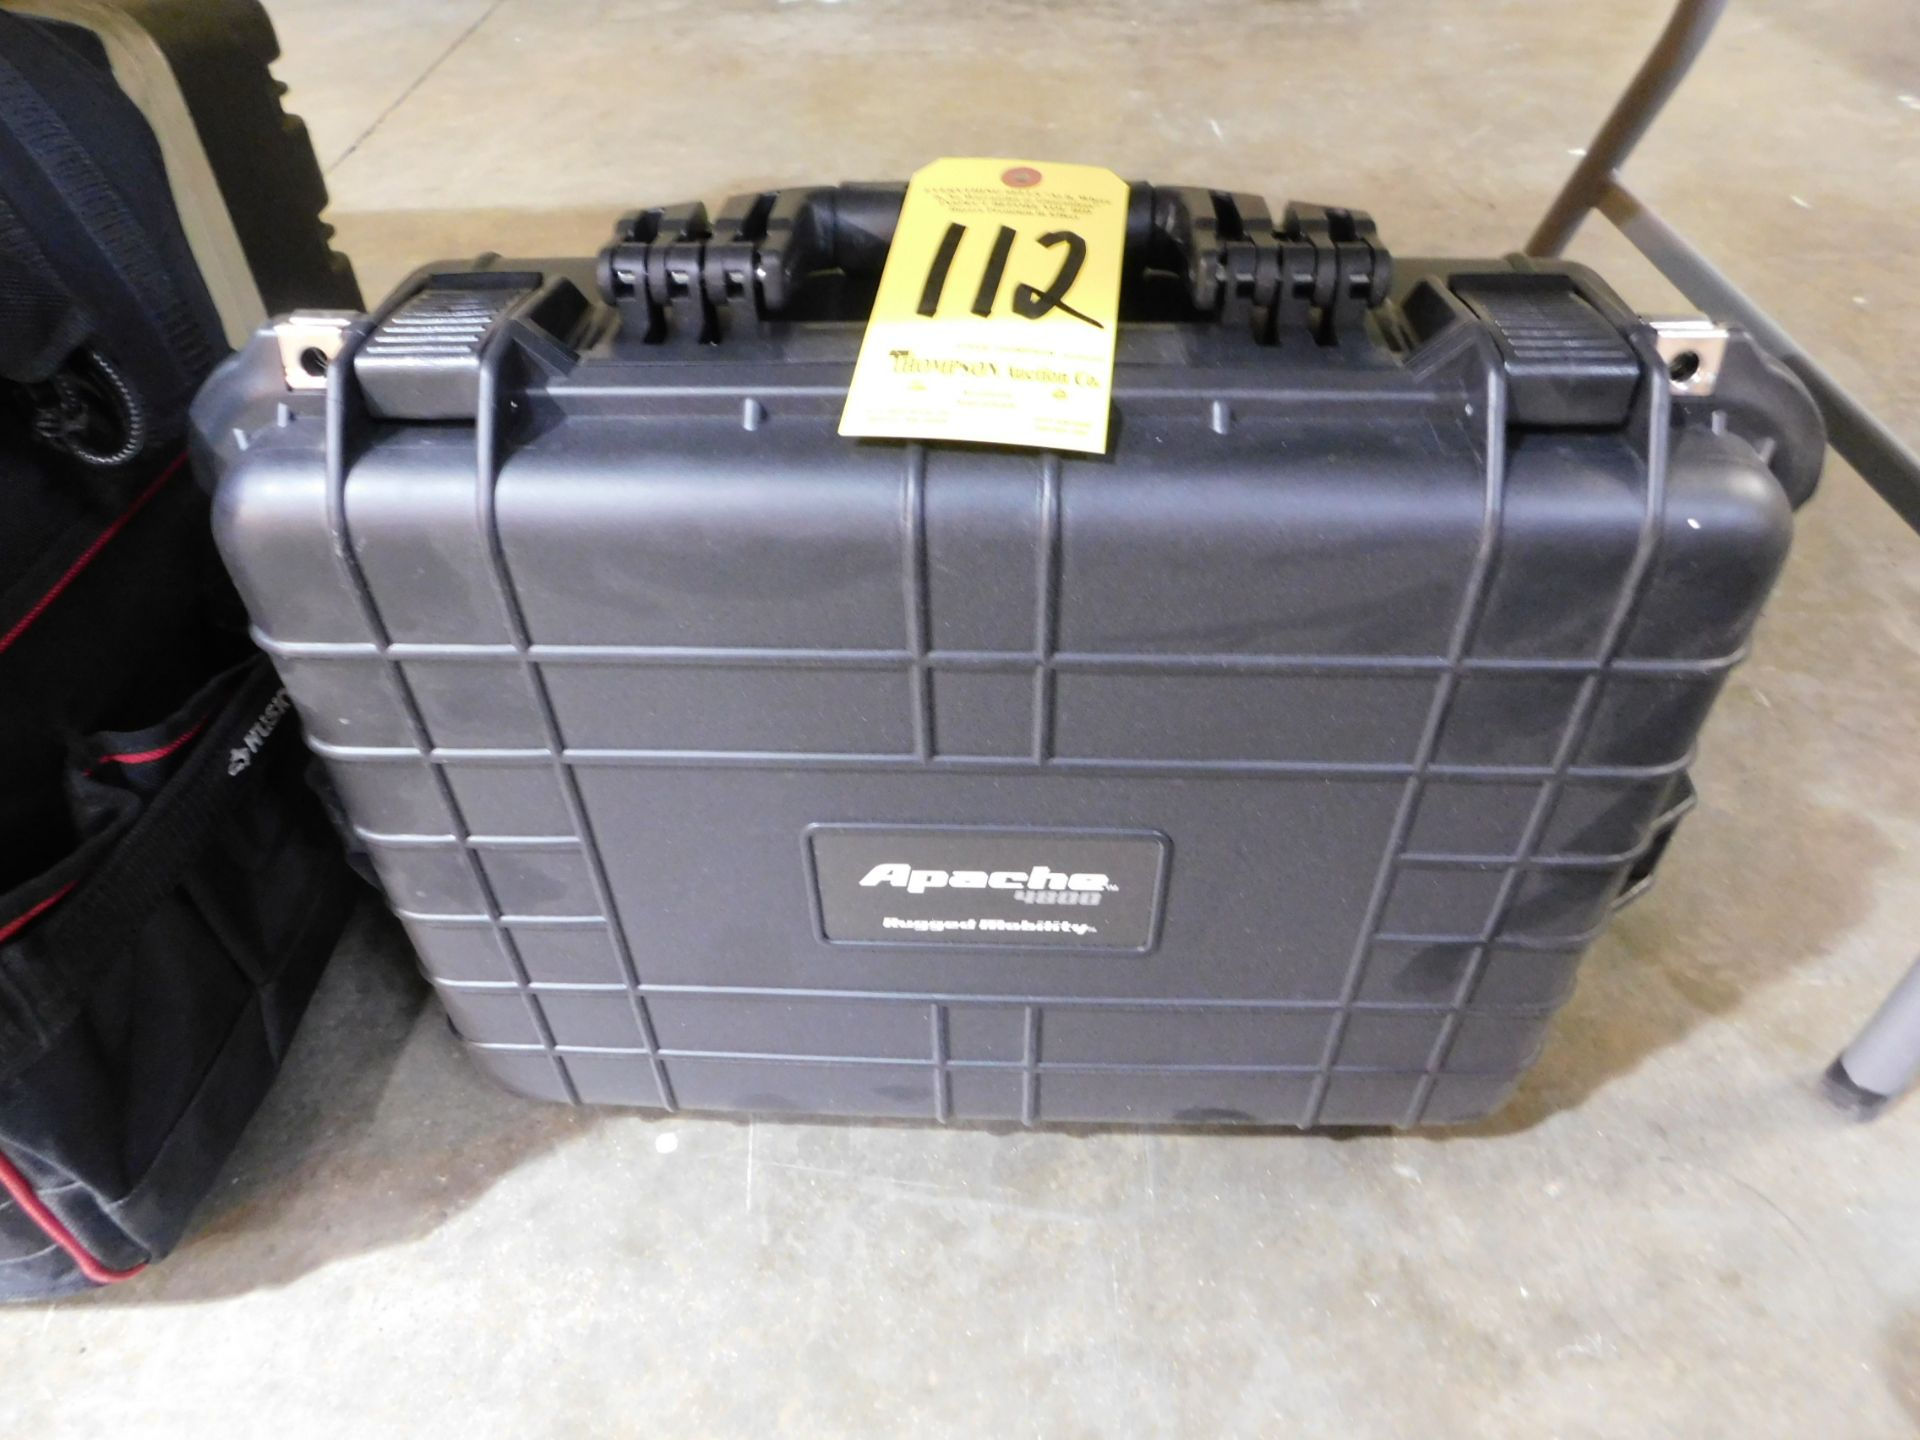 Lot 112 - Apache Tool Case, NEW, Lot Location 3204 Olympia Dr. A, Lafayette, IN 47909